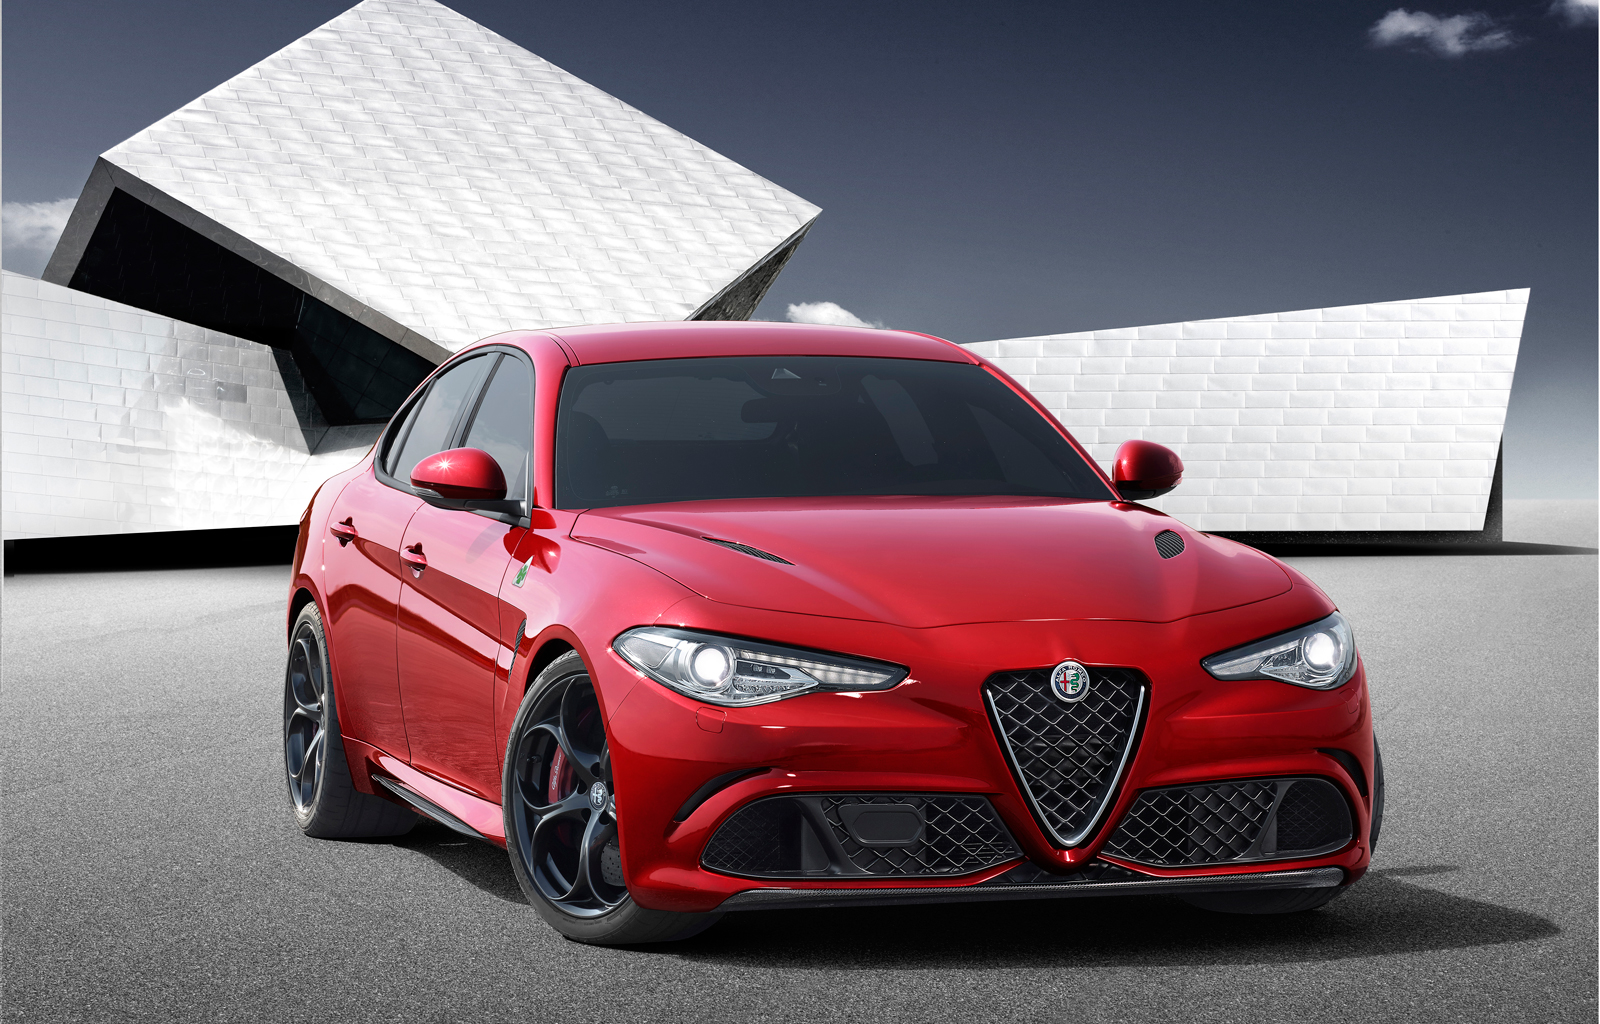 2017 alfa romeo giulia debuts with ferrari power toyota nation forum toyota car and truck forums. Black Bedroom Furniture Sets. Home Design Ideas